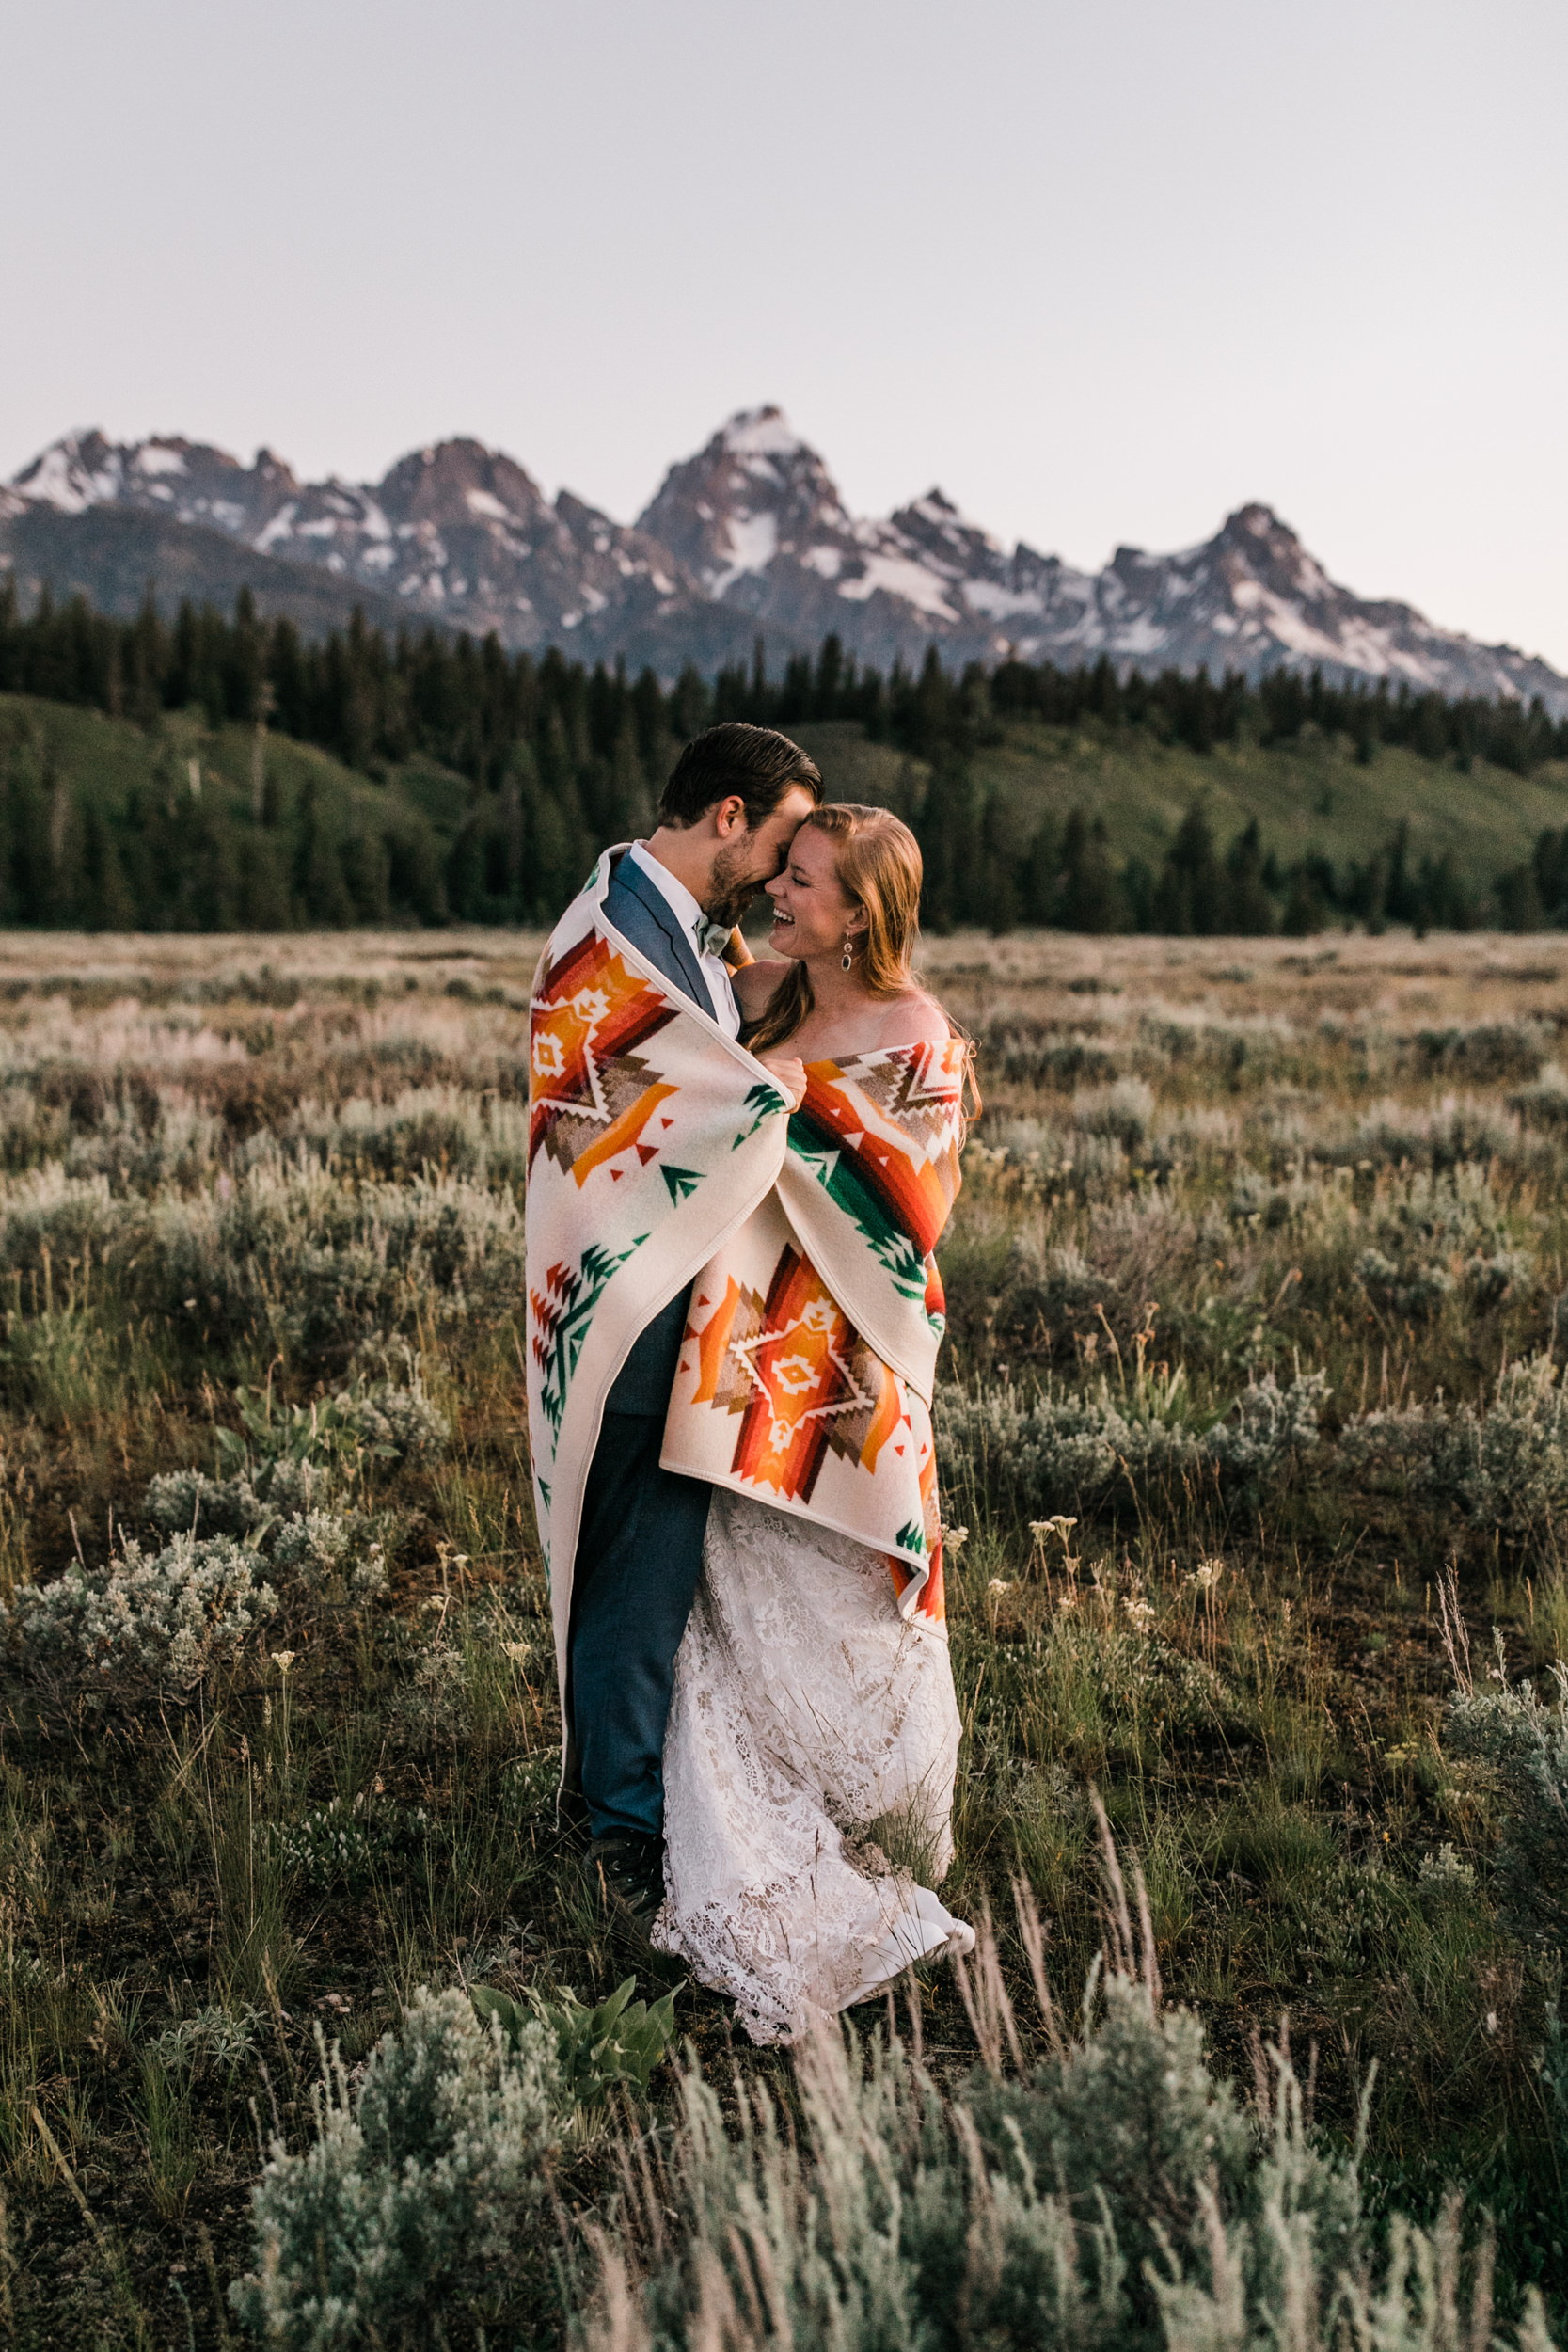 tara + david's post-wedding adventure portrait session in grand teton national park | jackson, wyoming wedding photographer | the hearnes adventure photography